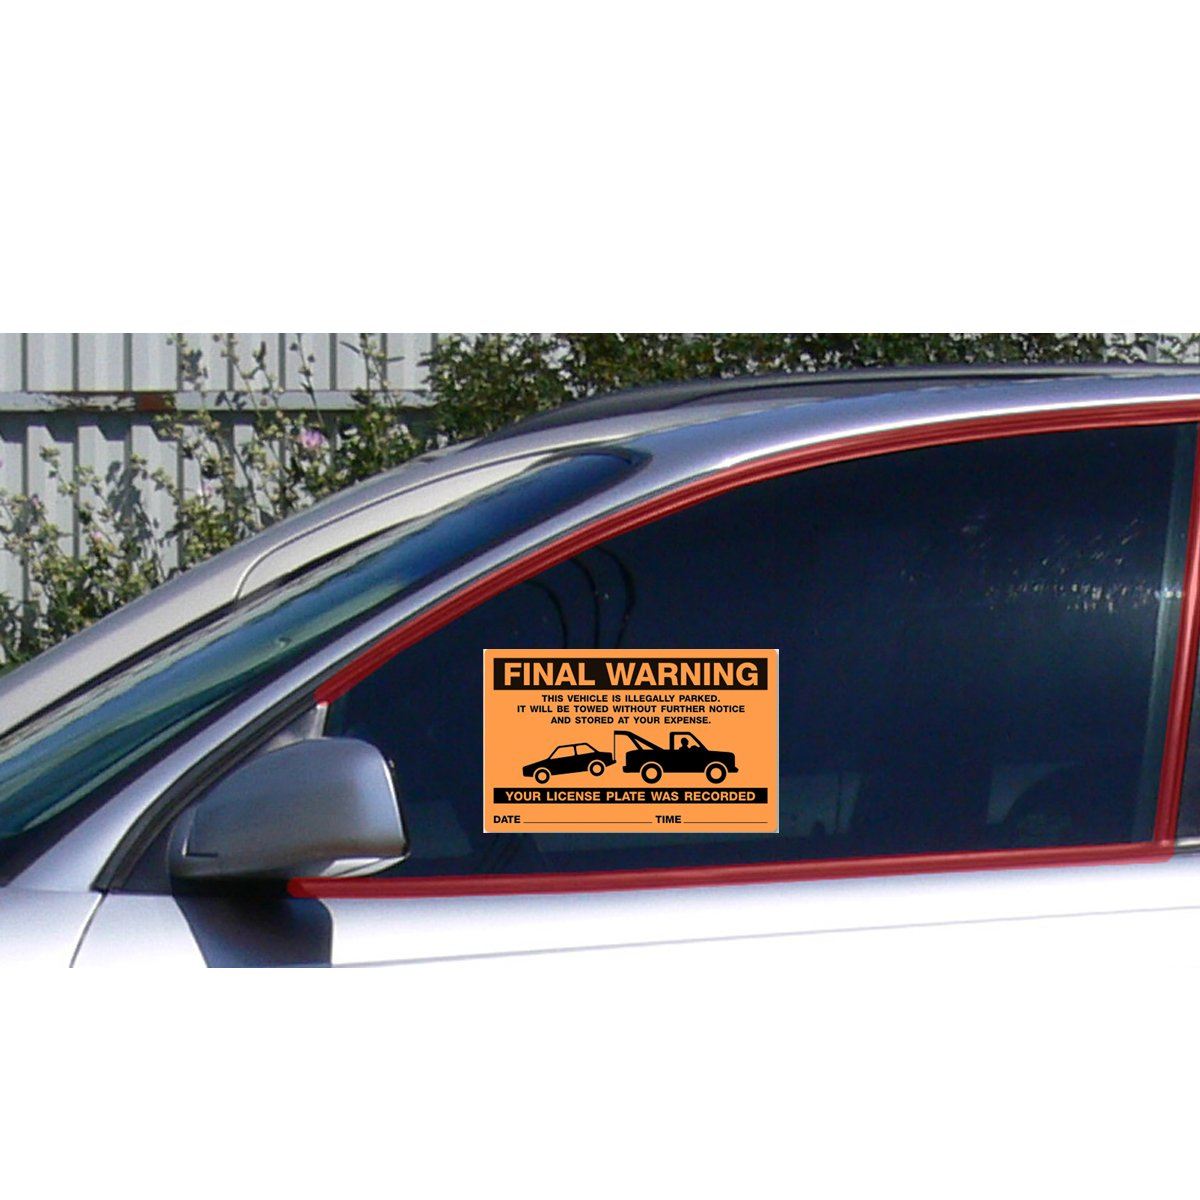 Amazon.com: Parking Violation Stickers For Illegal Parking Final Warning /  Very Hard To Remove and Super Sticky Permanent Adhesive (50 Pack) 8